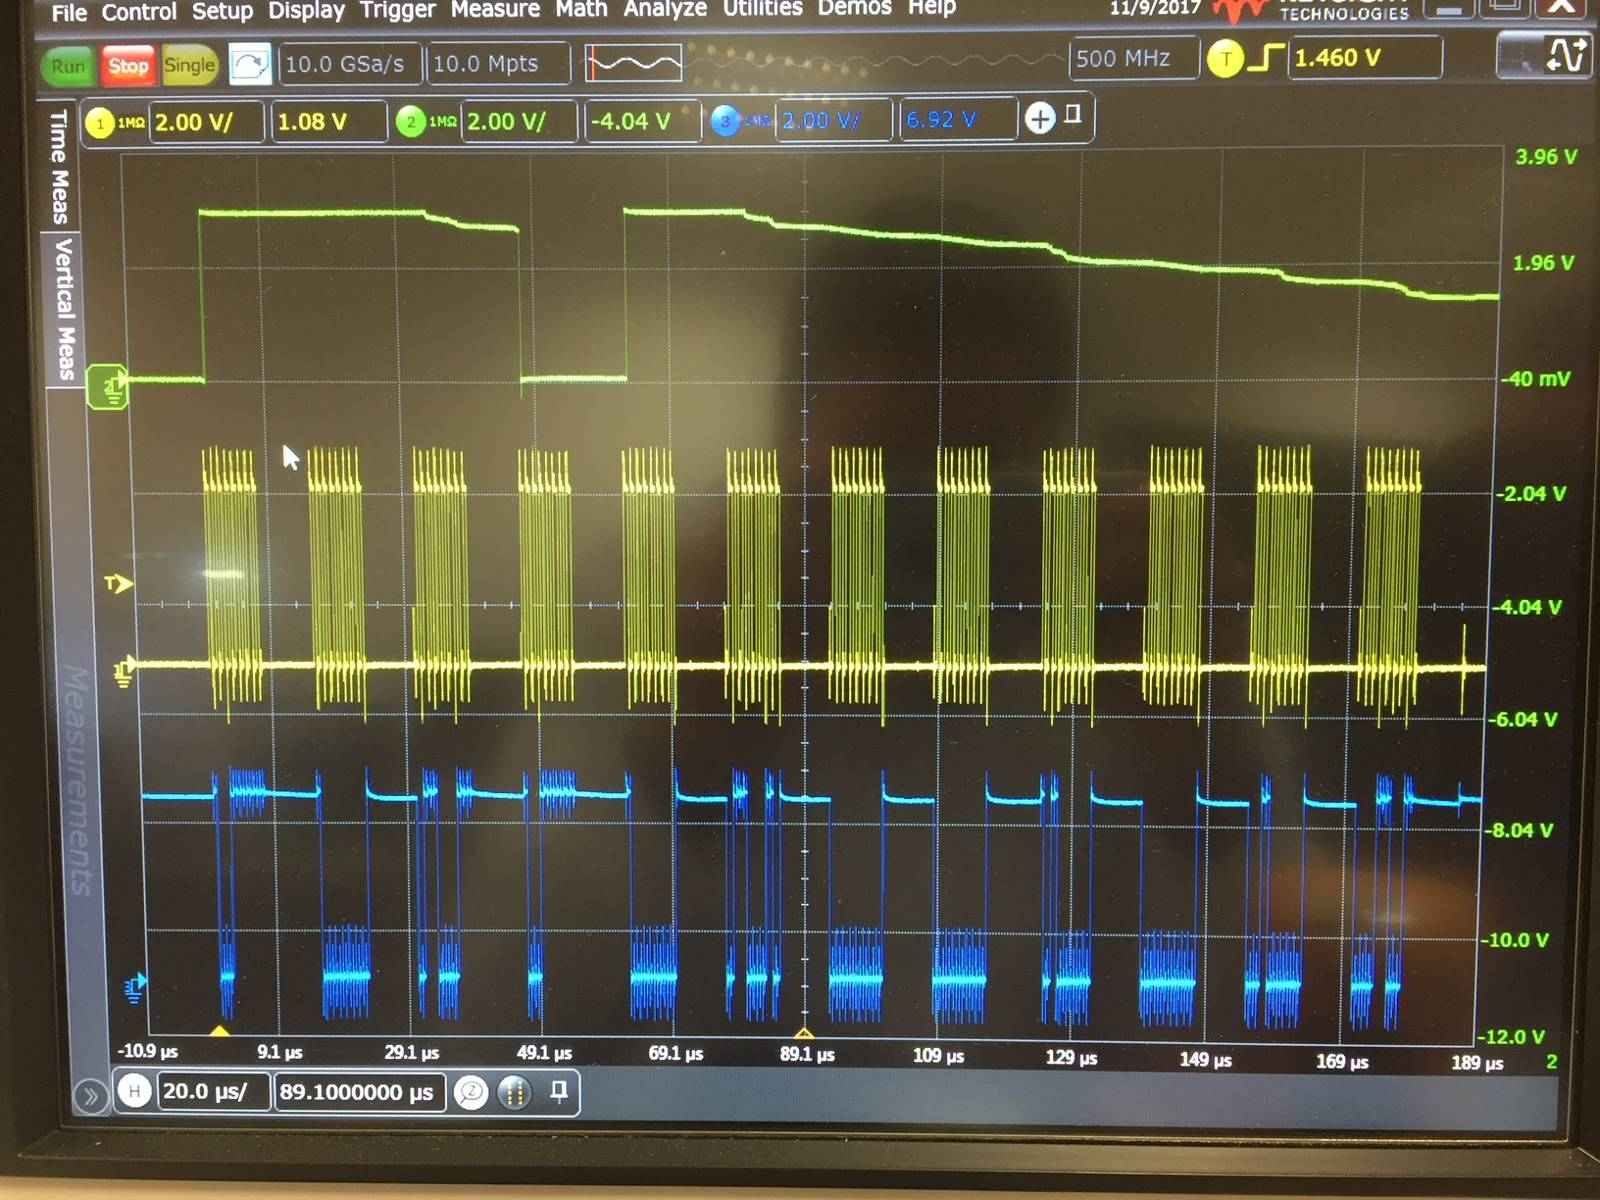 Programming Adf4106 Qa Rf And Microwave Engineerzone Screenshots Of Schematic Data Display Areas The Le Signal Is Generally At Logic High However When During A Spi Word Being Sent It Goes Stay Low Once